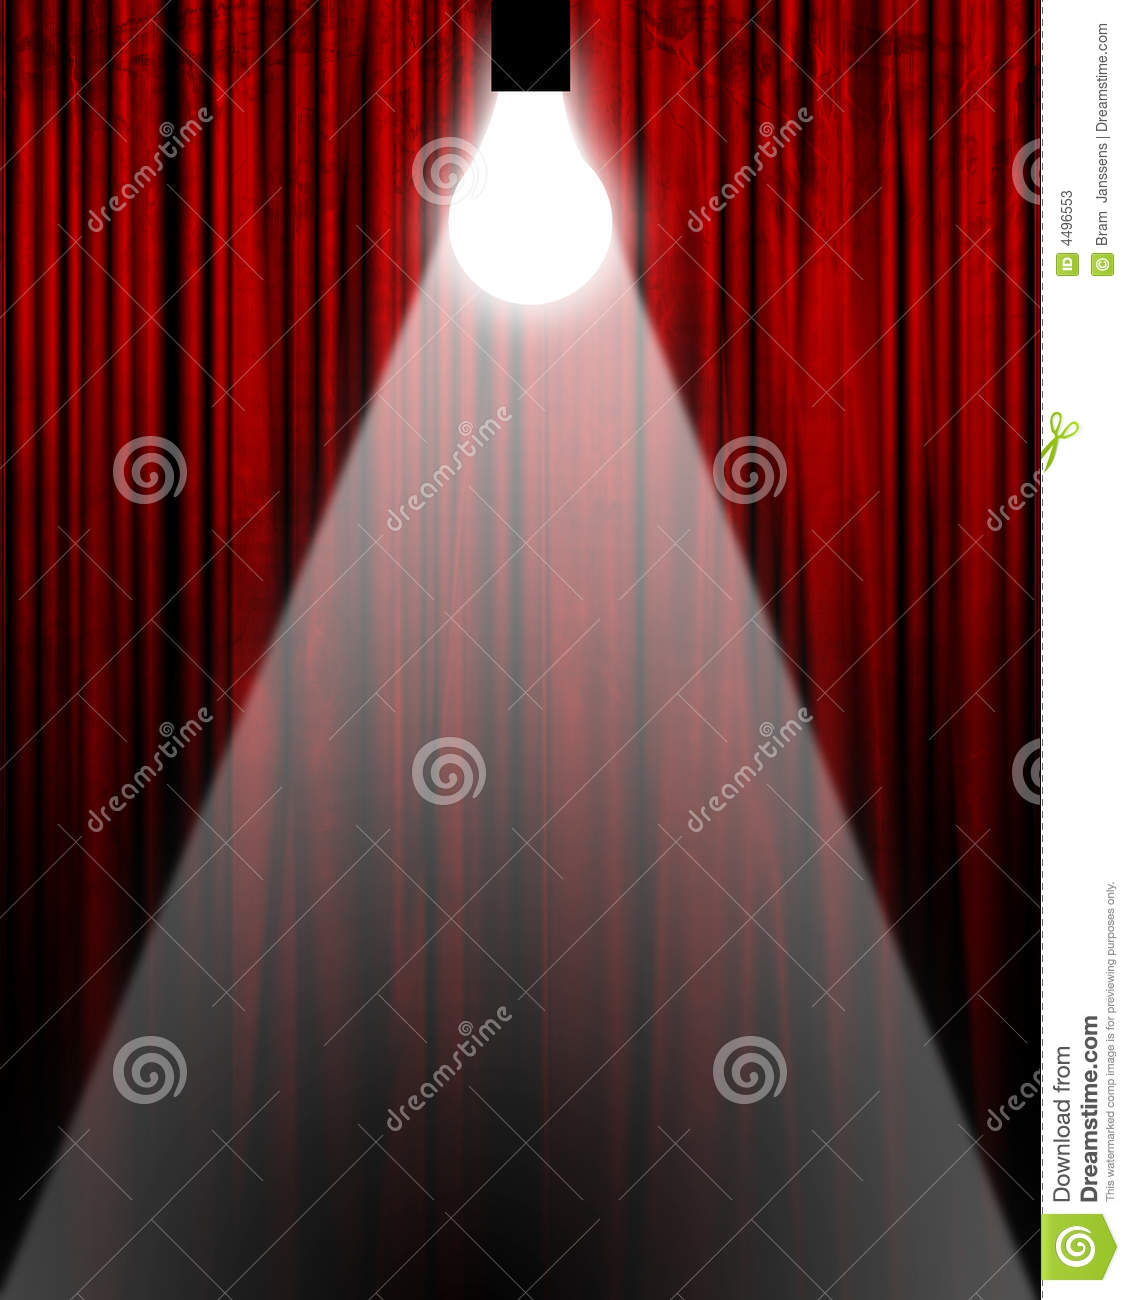 More similar stock images of ` Movie or theater curtain `